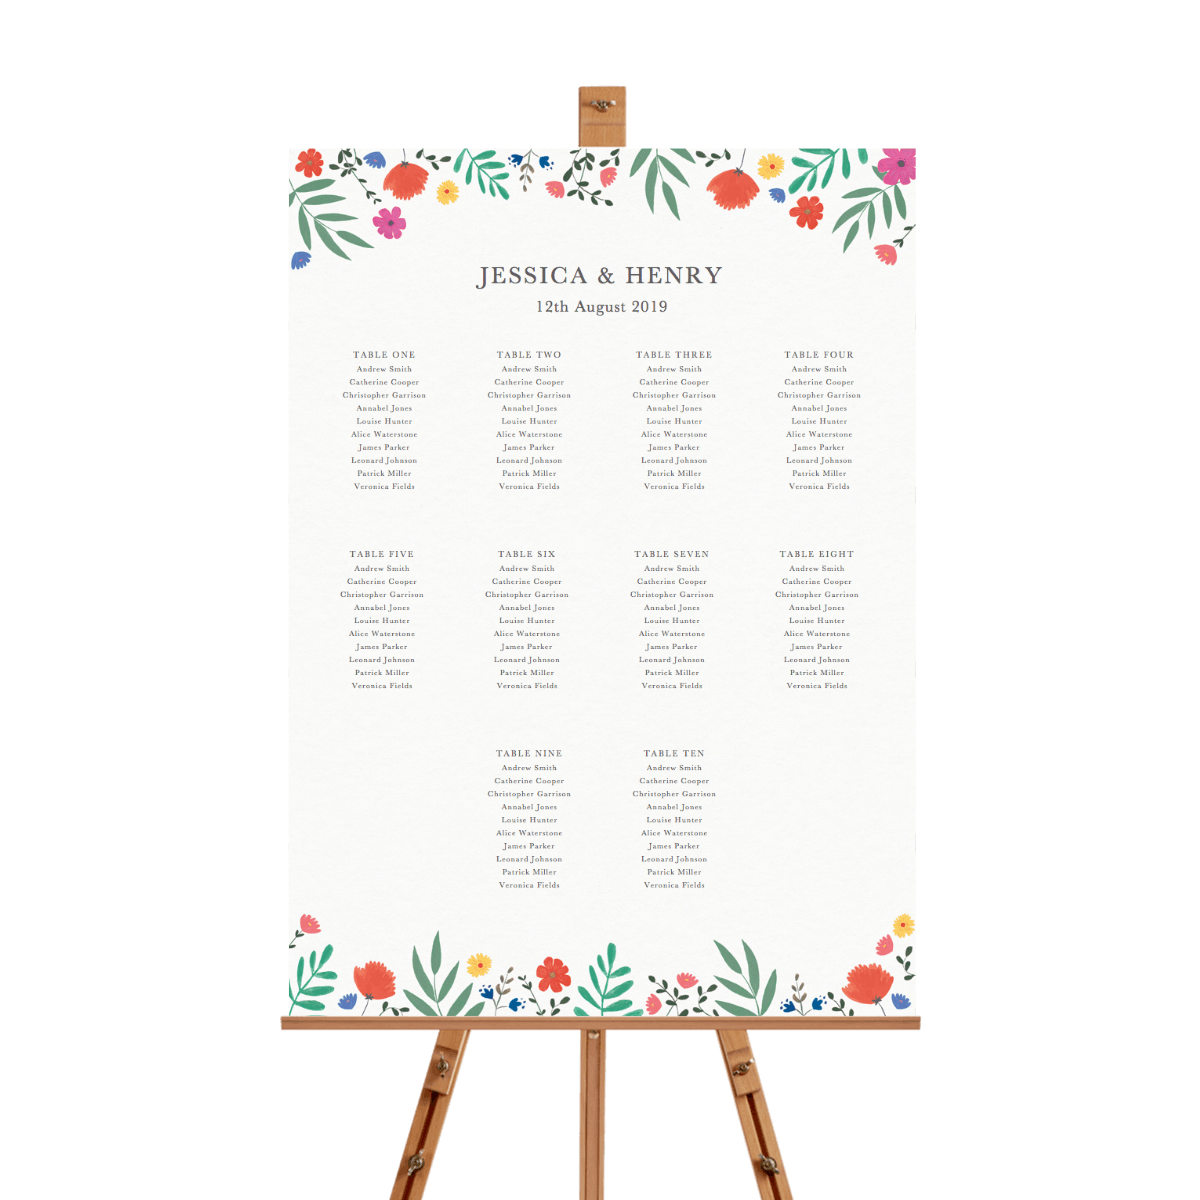 Https%3a%2f%2fwww.papier.com%2fproduct image%2f40464%2f1%2fbright wild flowers 10124 front 1530180297.png?ixlib=rb 1.1